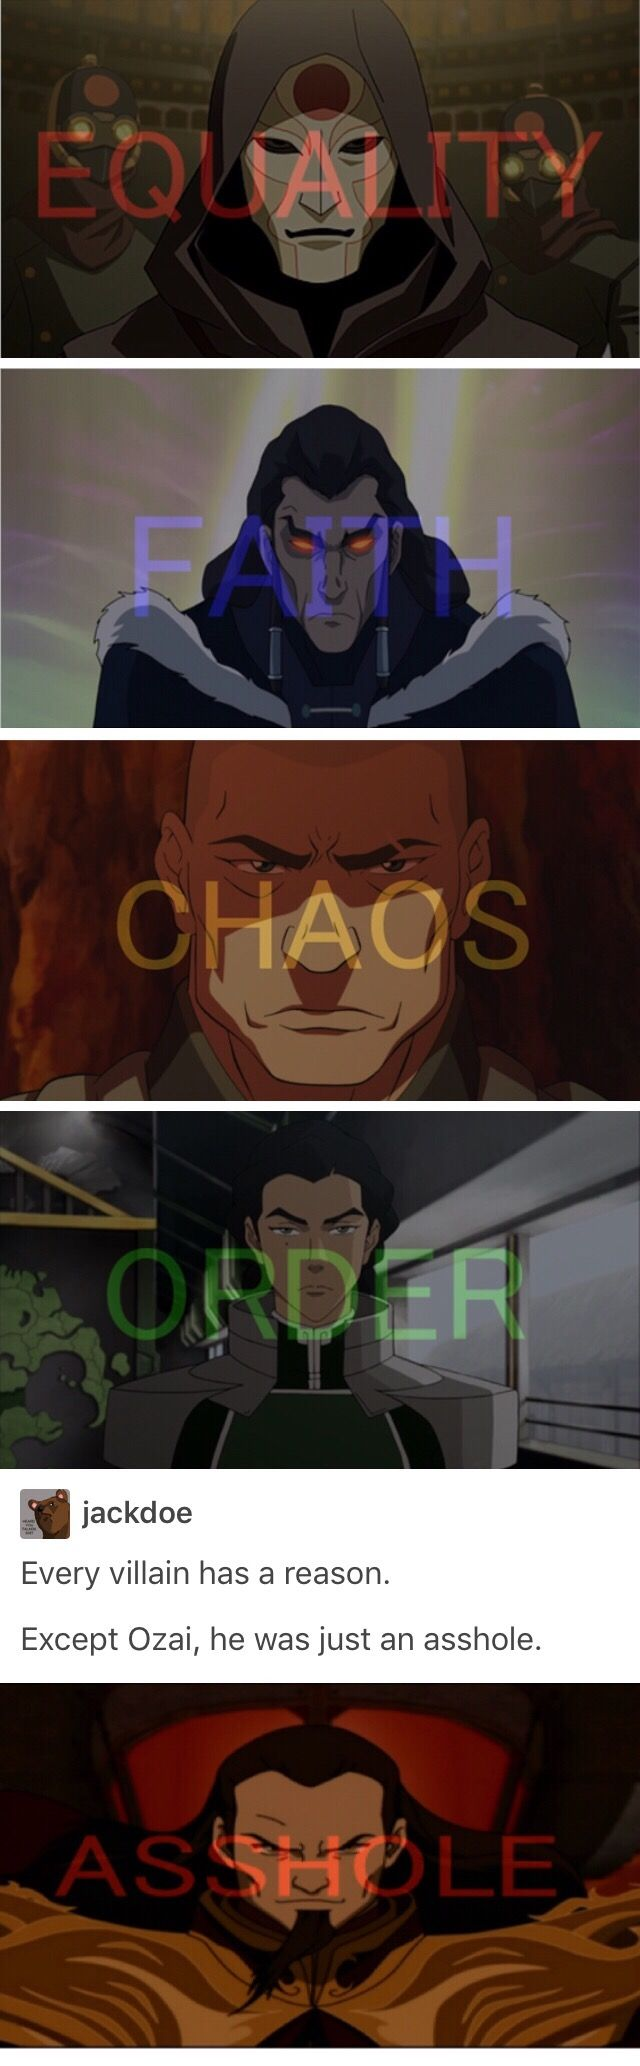 Avatar the last Airbender + The Legend of Korra villains